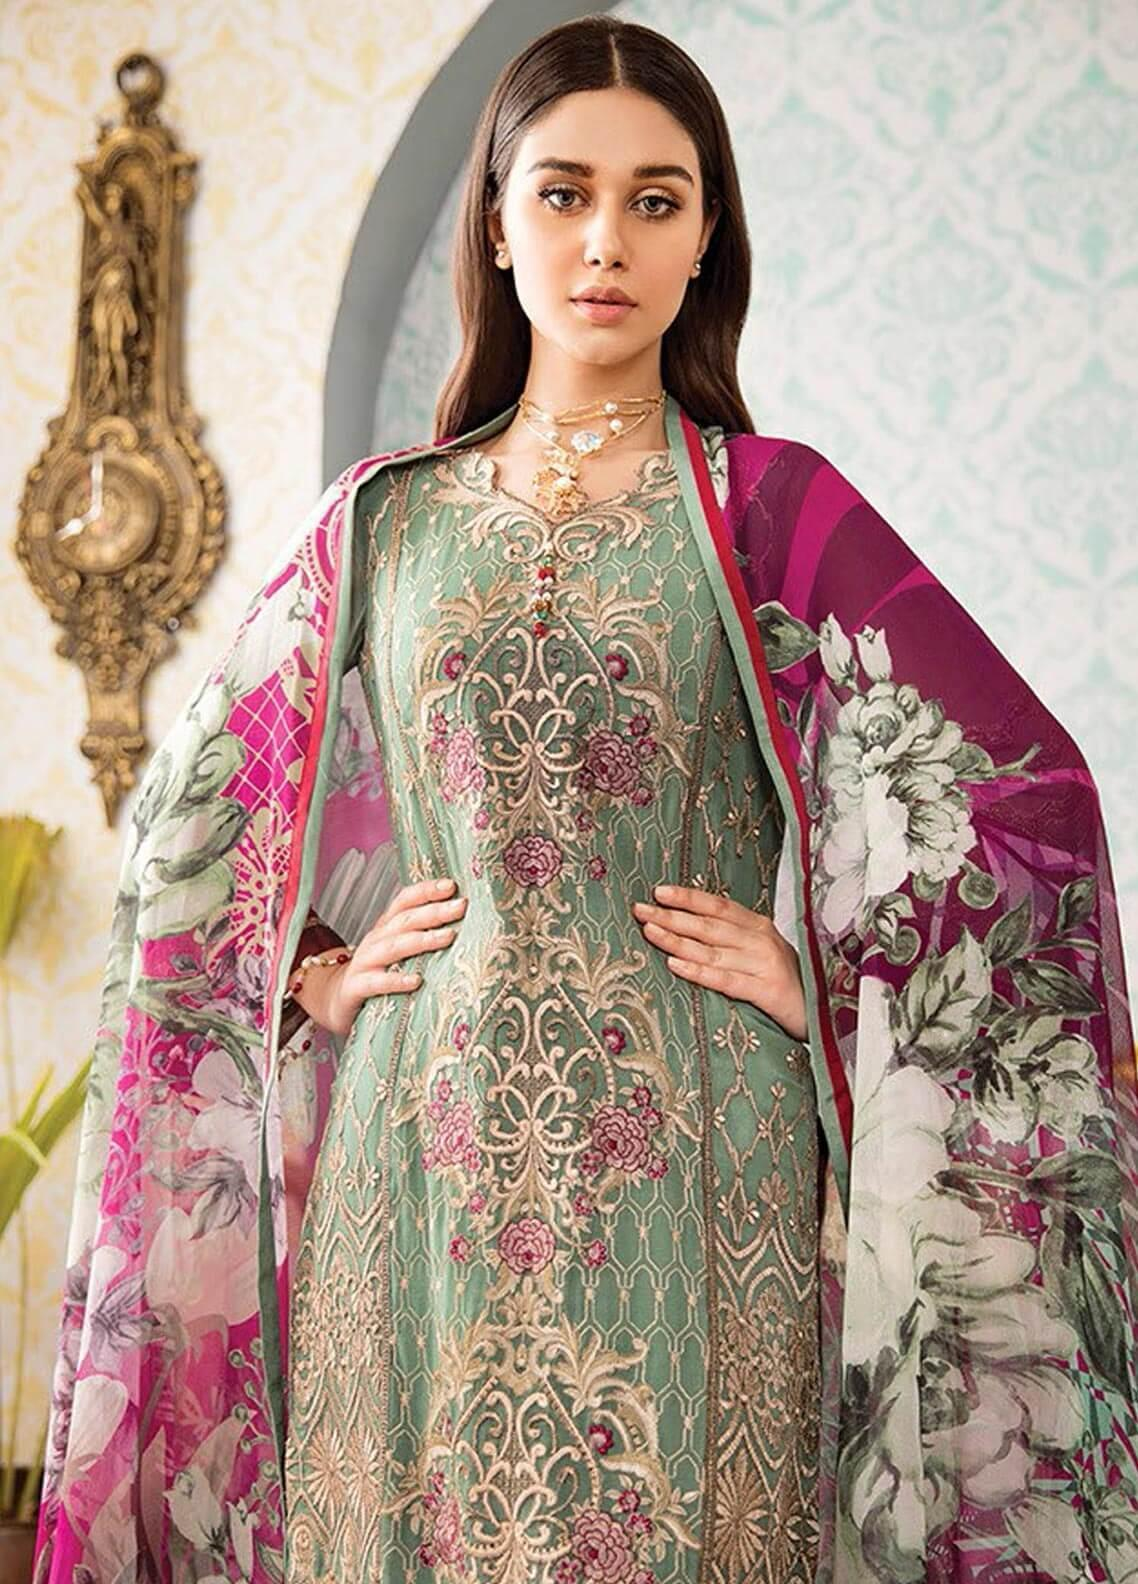 fa104b1f43 Kuch Khas By Flossie Embroidered Chiffon Unstitched 3 Piece Suit FKK19-C4  01 APPLE BLOSSOM - Luxury Collection